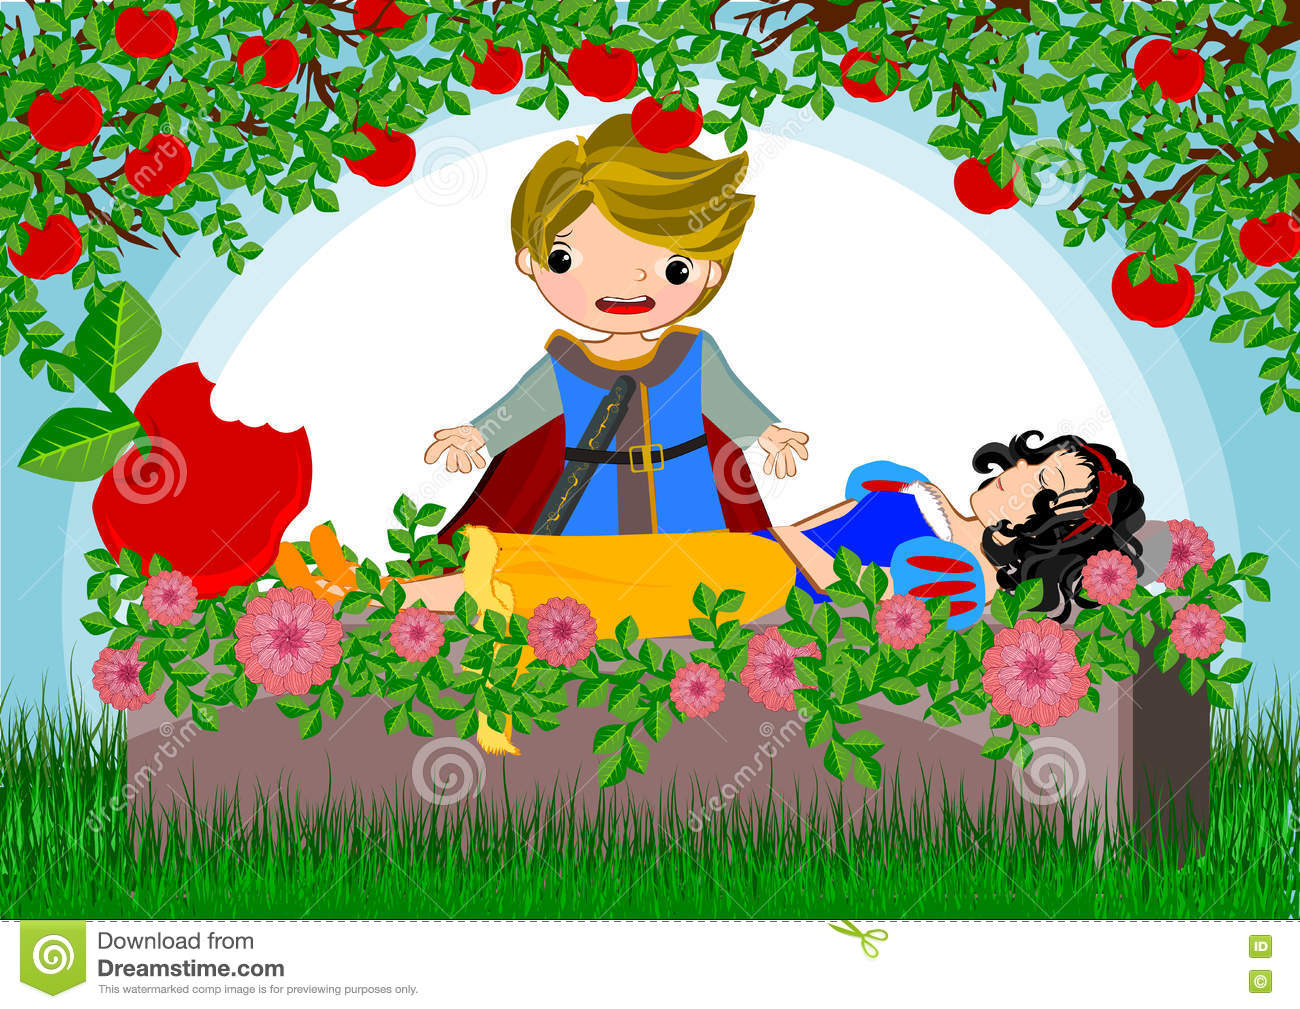 Snow white stock illustration  Illustration of palace - 73925825